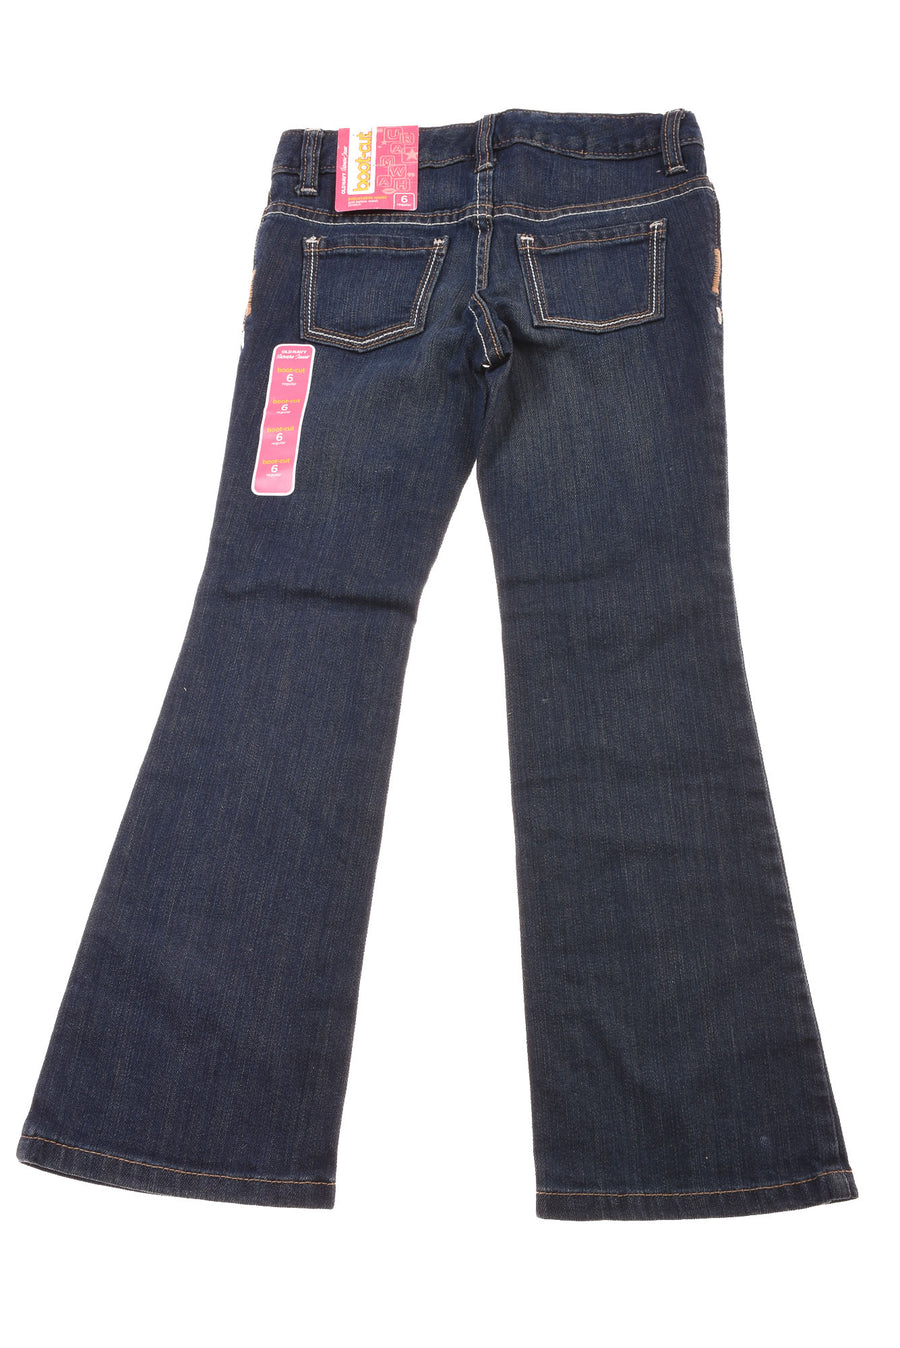 NEW Old Navy Girl's Pants 6 Blue